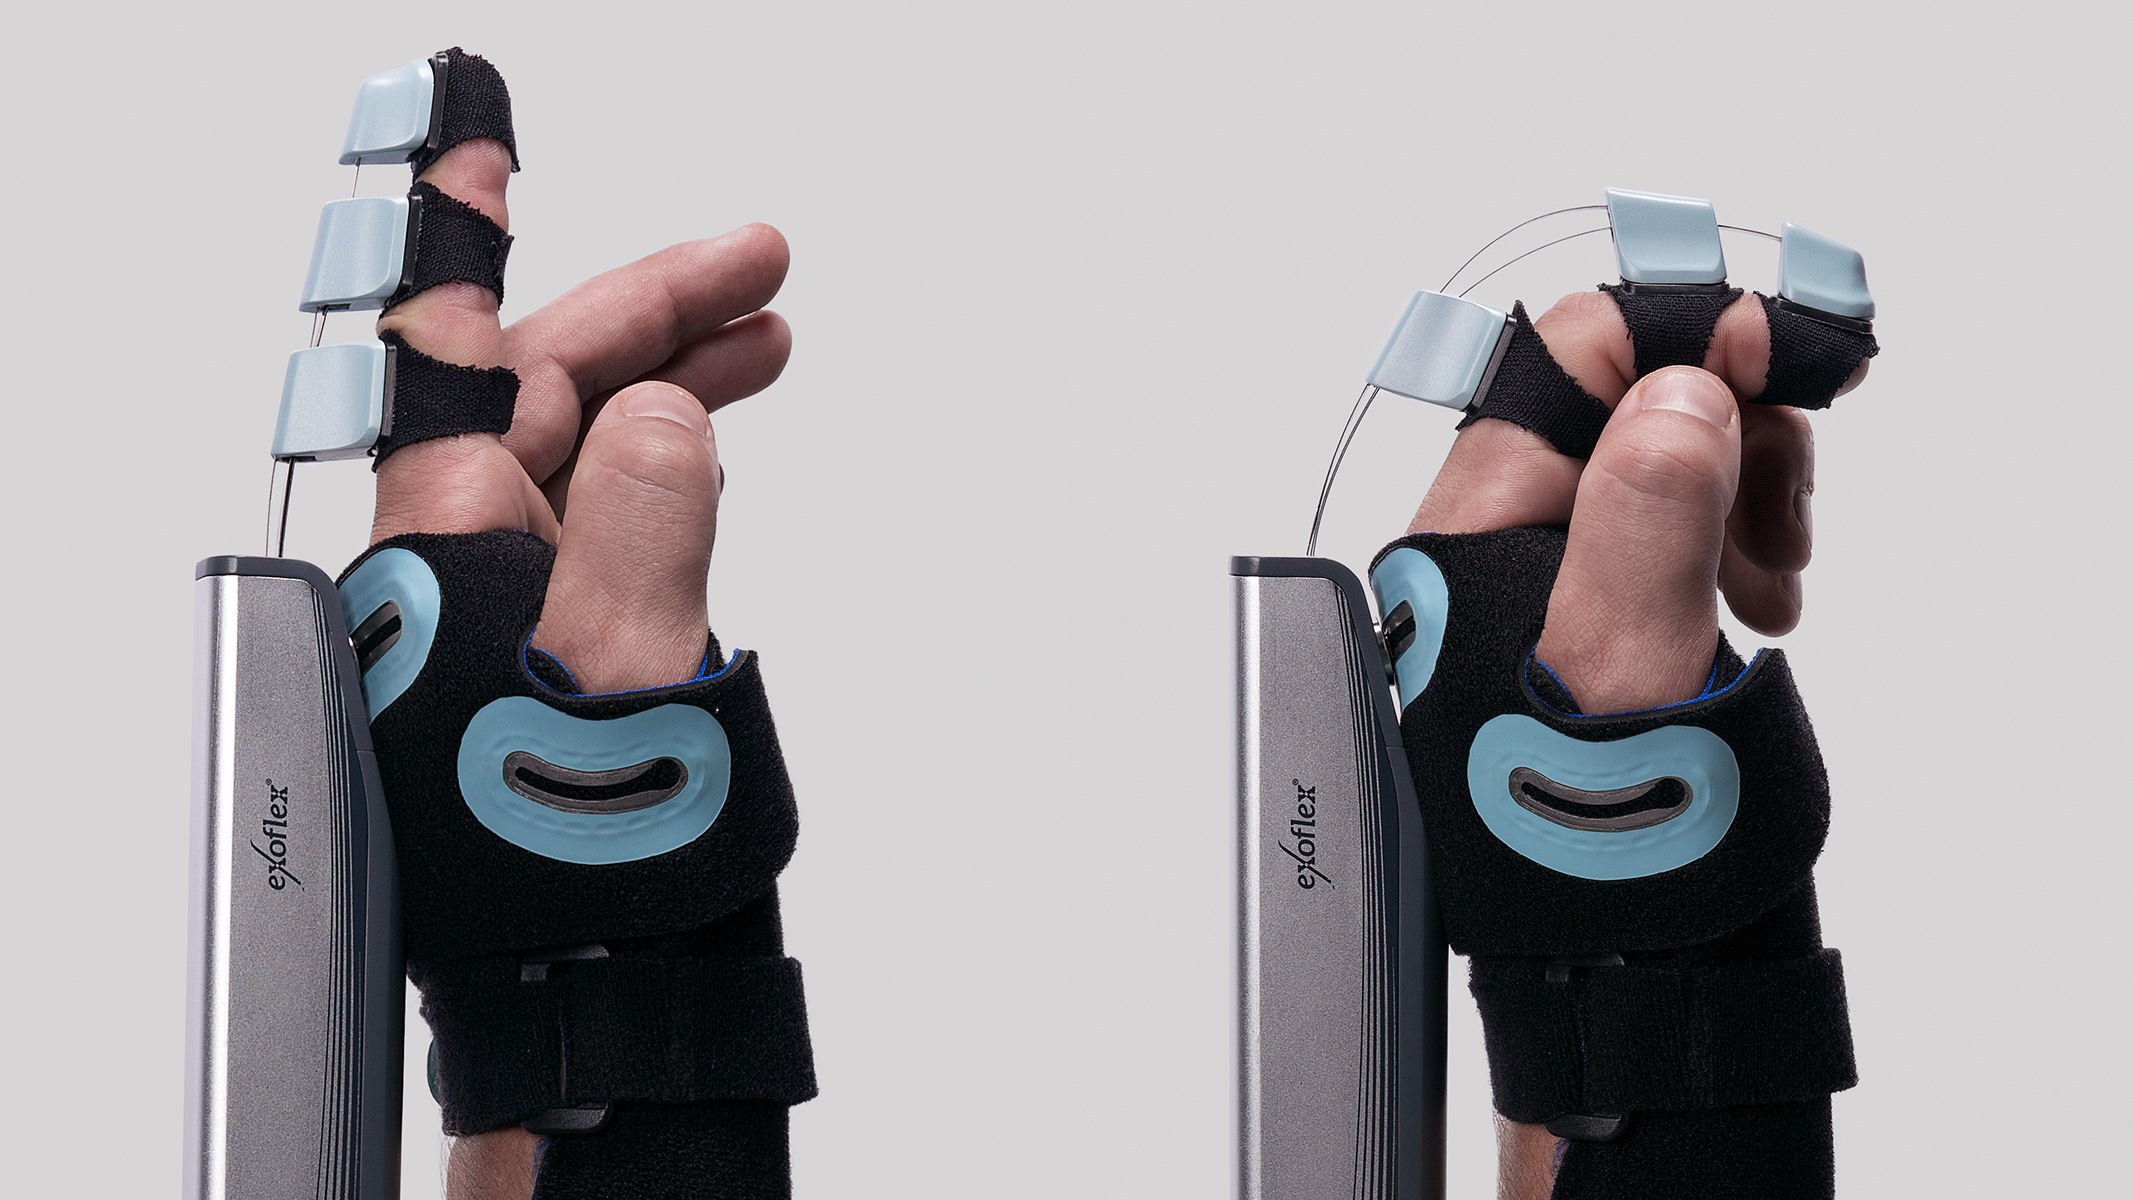 EXOFLEX Hand Therapy & Assessment Device